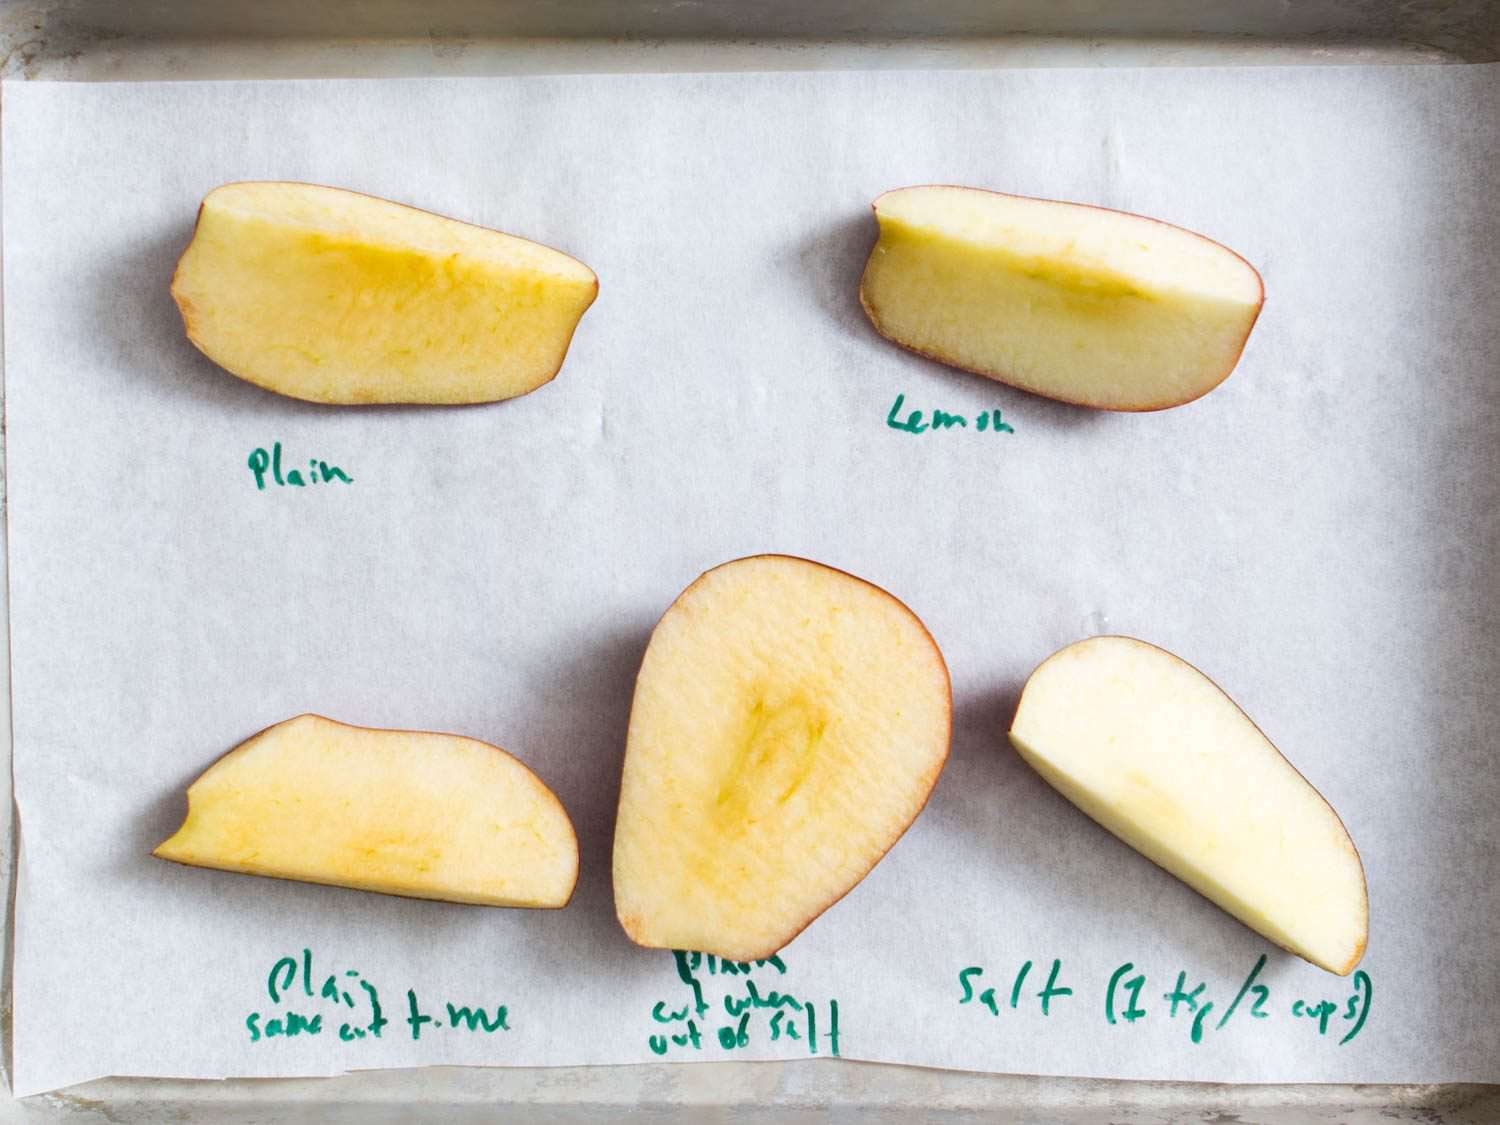 Comparison of cut apples that have been treated differently in order to prevent browning.